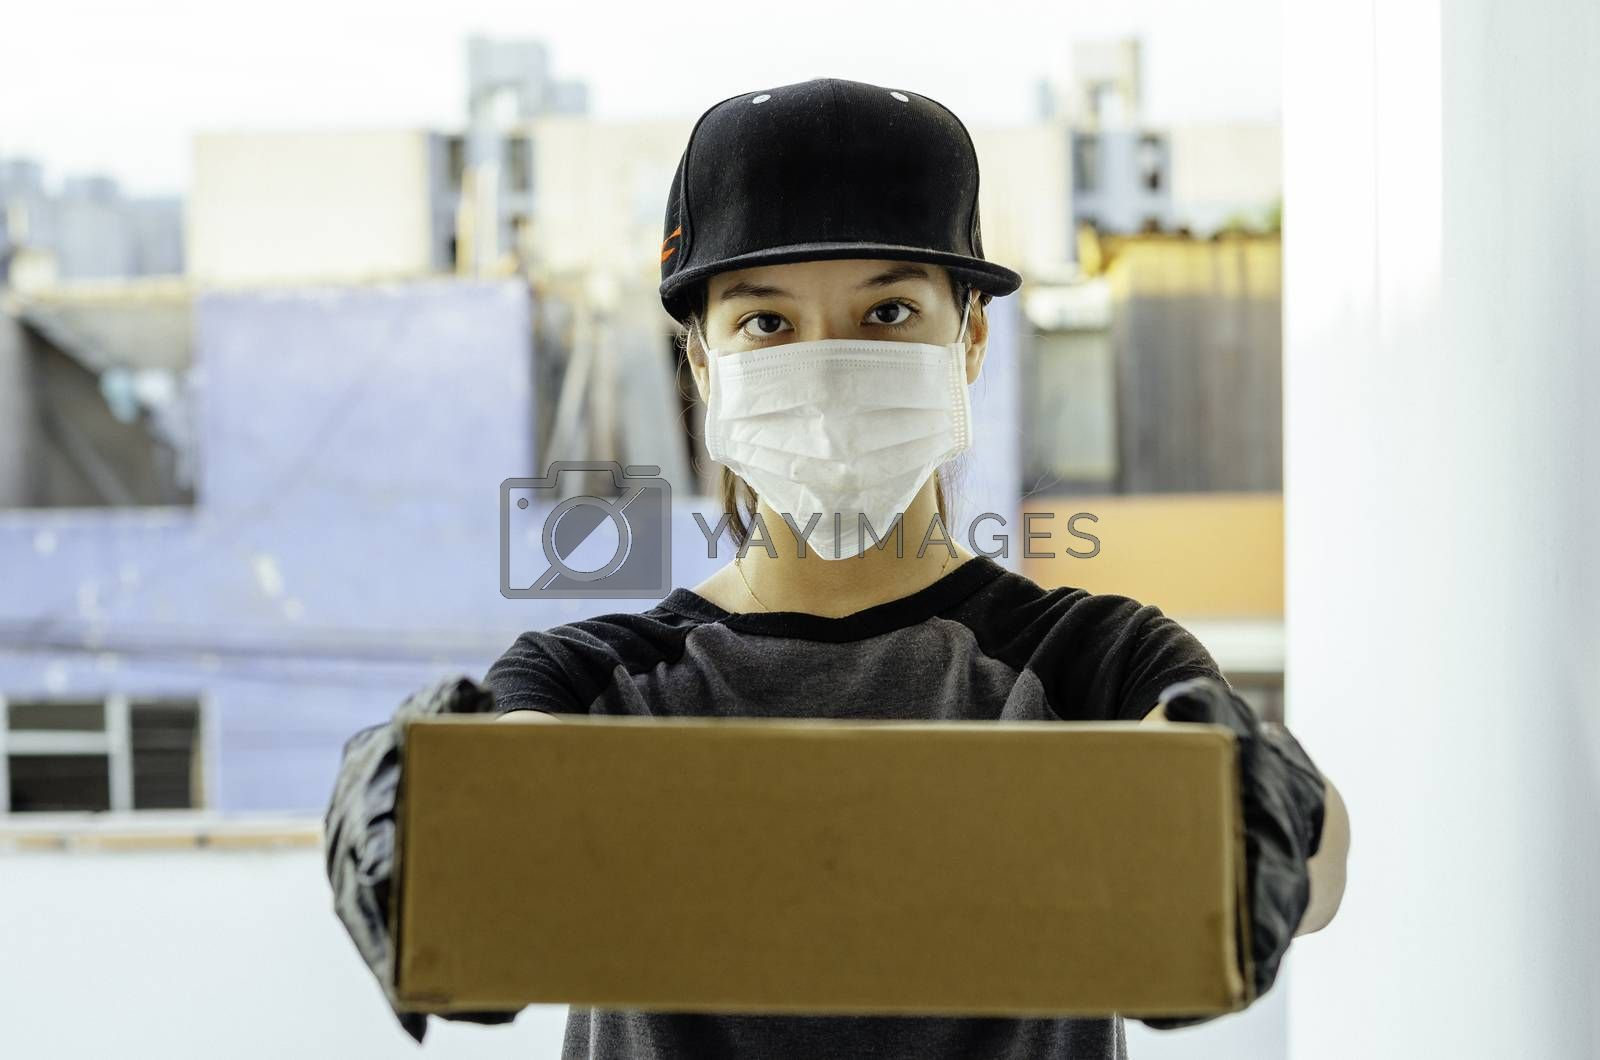 Home delivery food during virus outbreak, coronavirus panic and pandemics. Stay safe